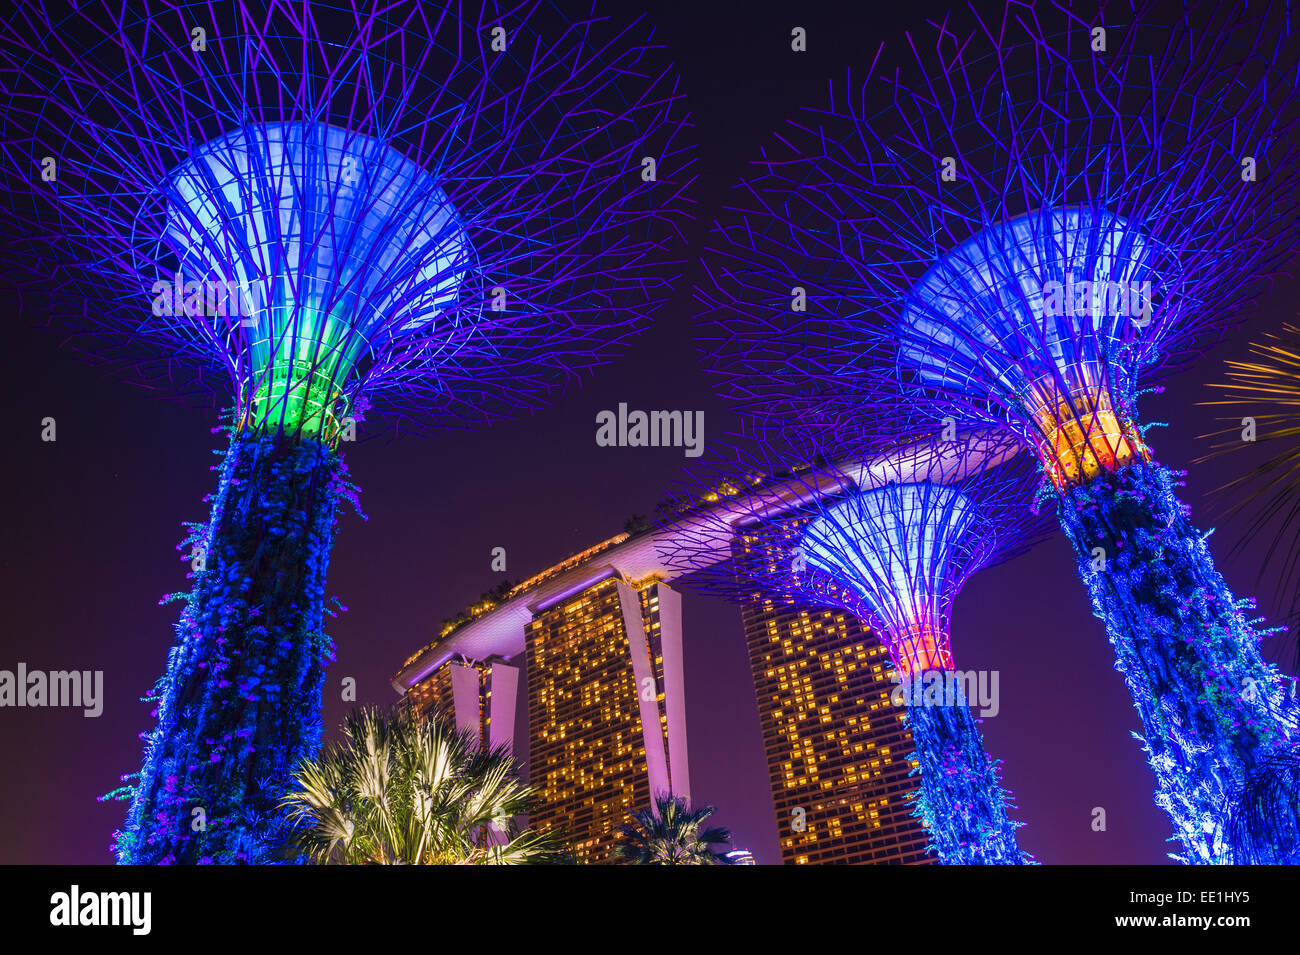 Gardens by the Bay and Marina Bay Sands Hotel at night, Singapore, Southeast Asia, Asia - Stock Image